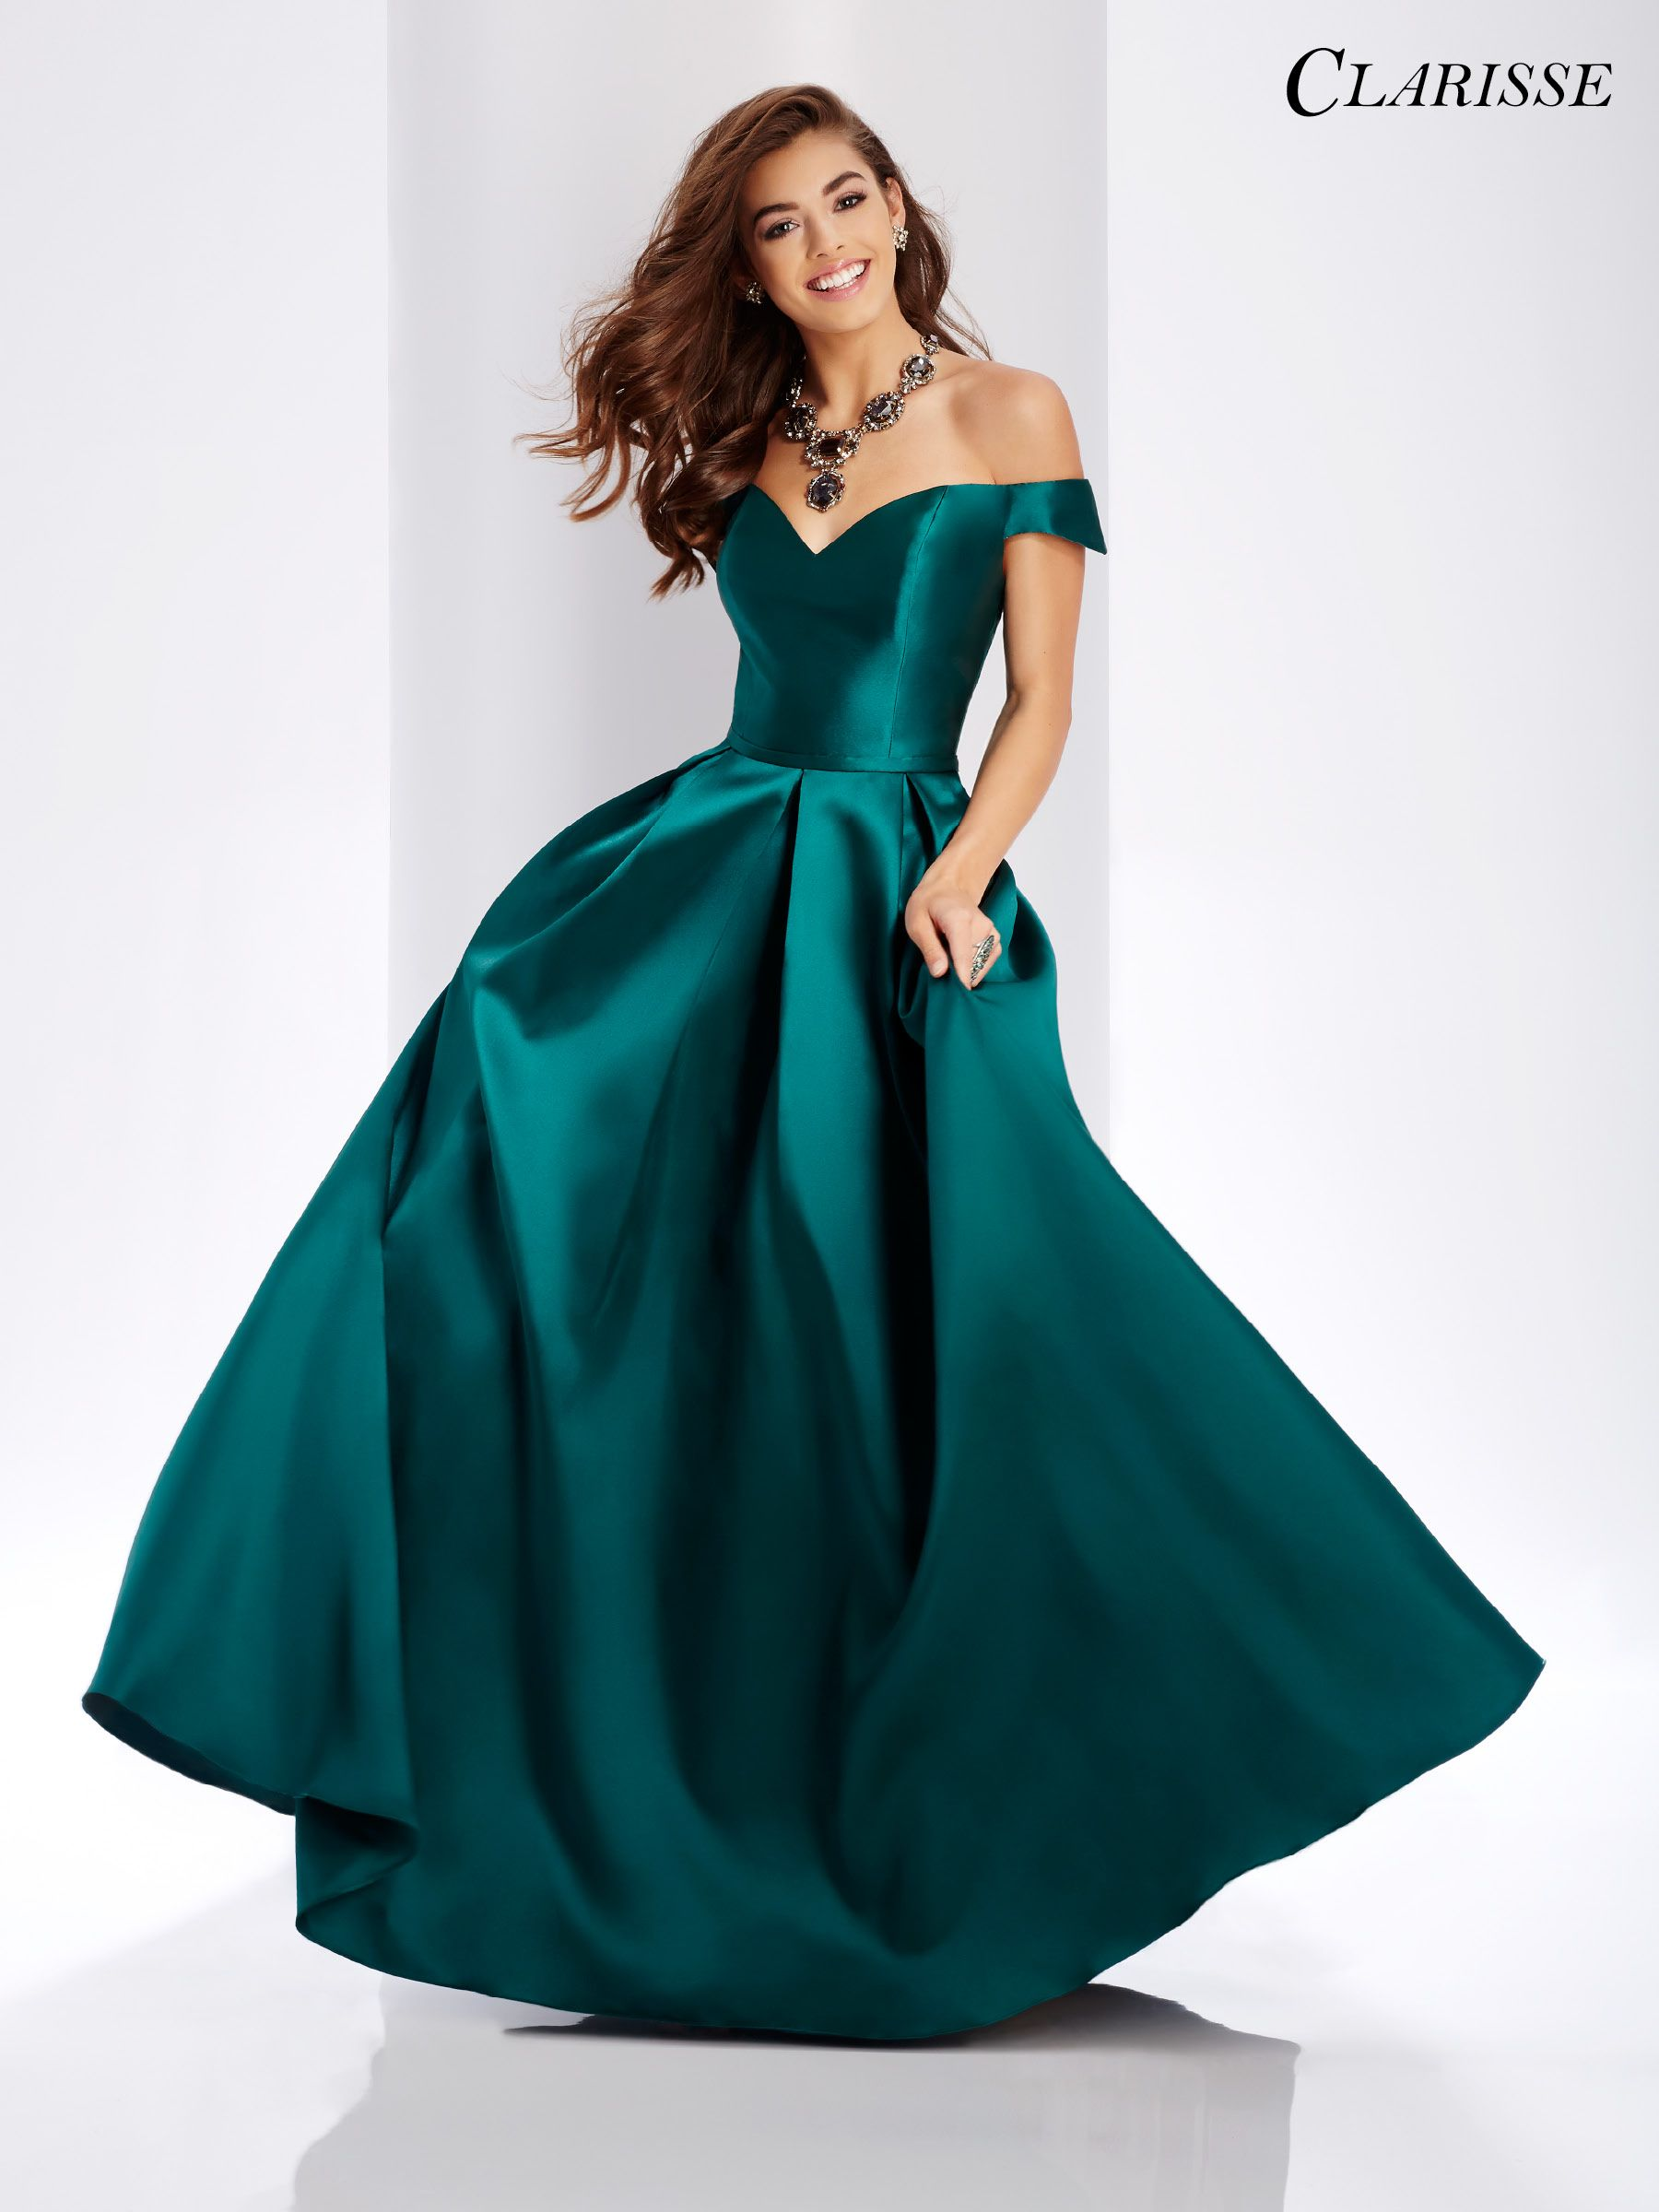 3a8551b3423 Where To Get Homecoming Dresses In York Pa